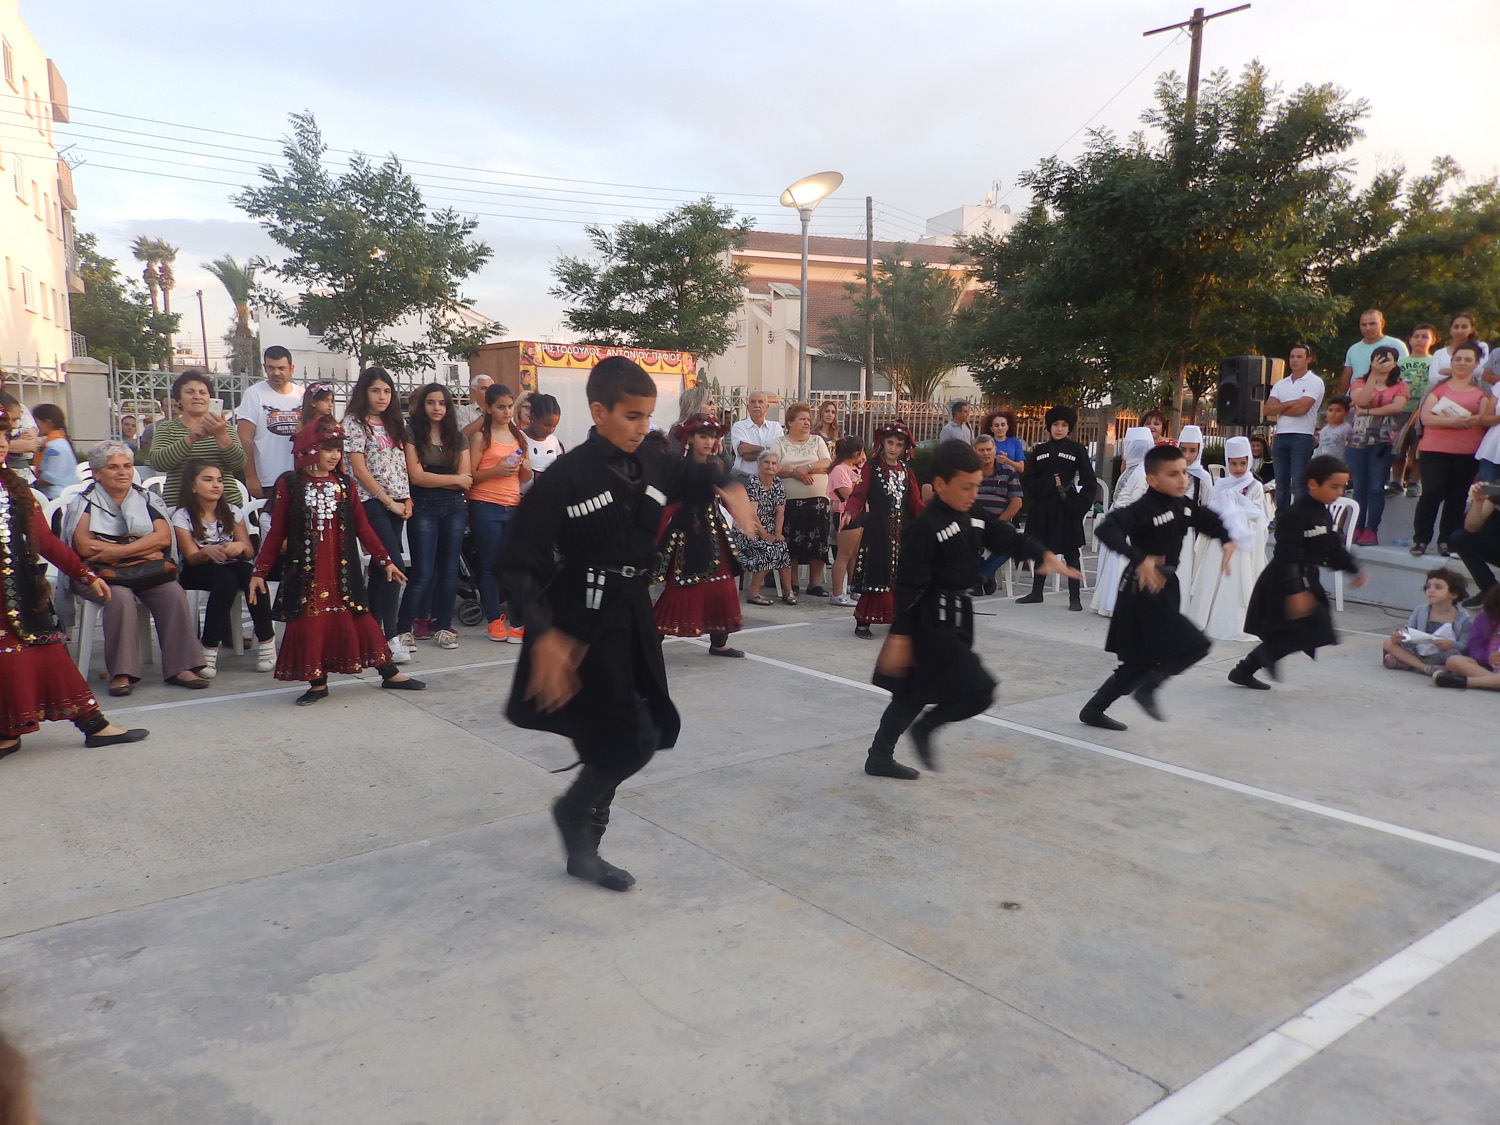 multicultural_Childrens_Festival_Ayios_Dhometios28516_28